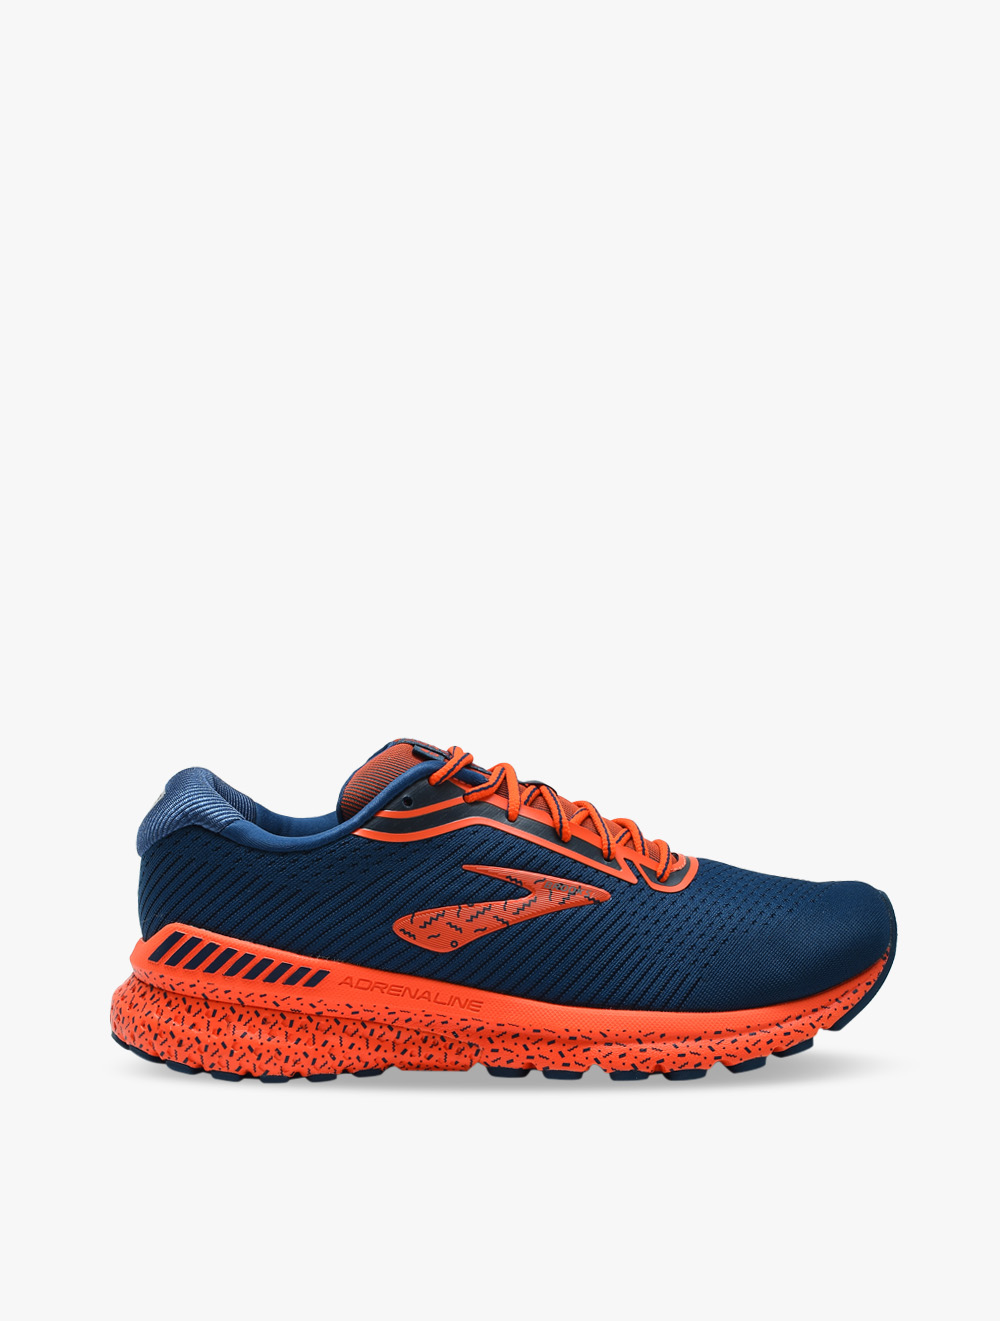 Shop Shoes From Brooks Planet Sports on